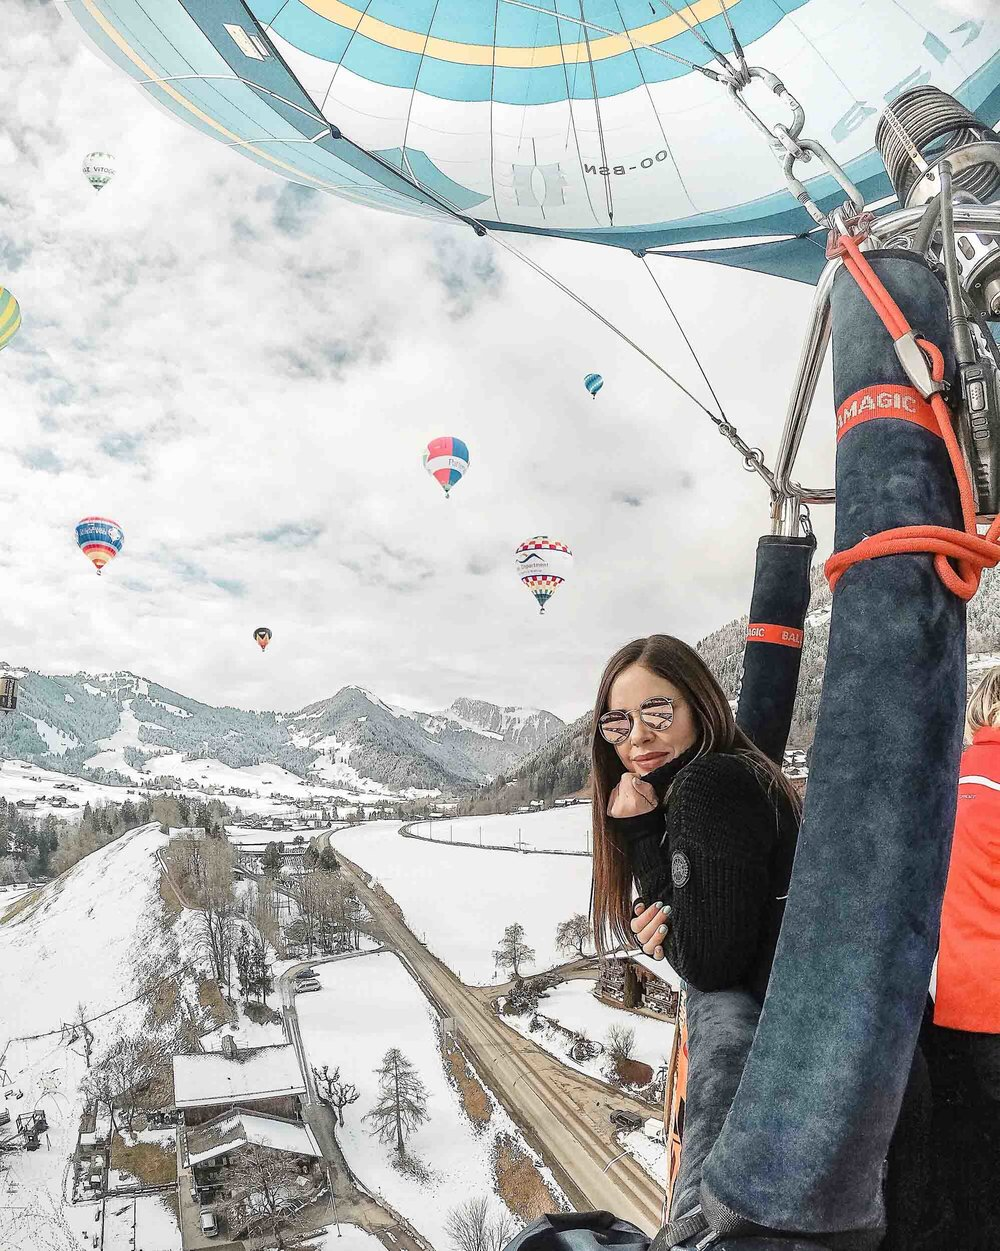 Passenger flight at the Chateau d'Oex International Hot Air Balloon Festival in Switzerland!